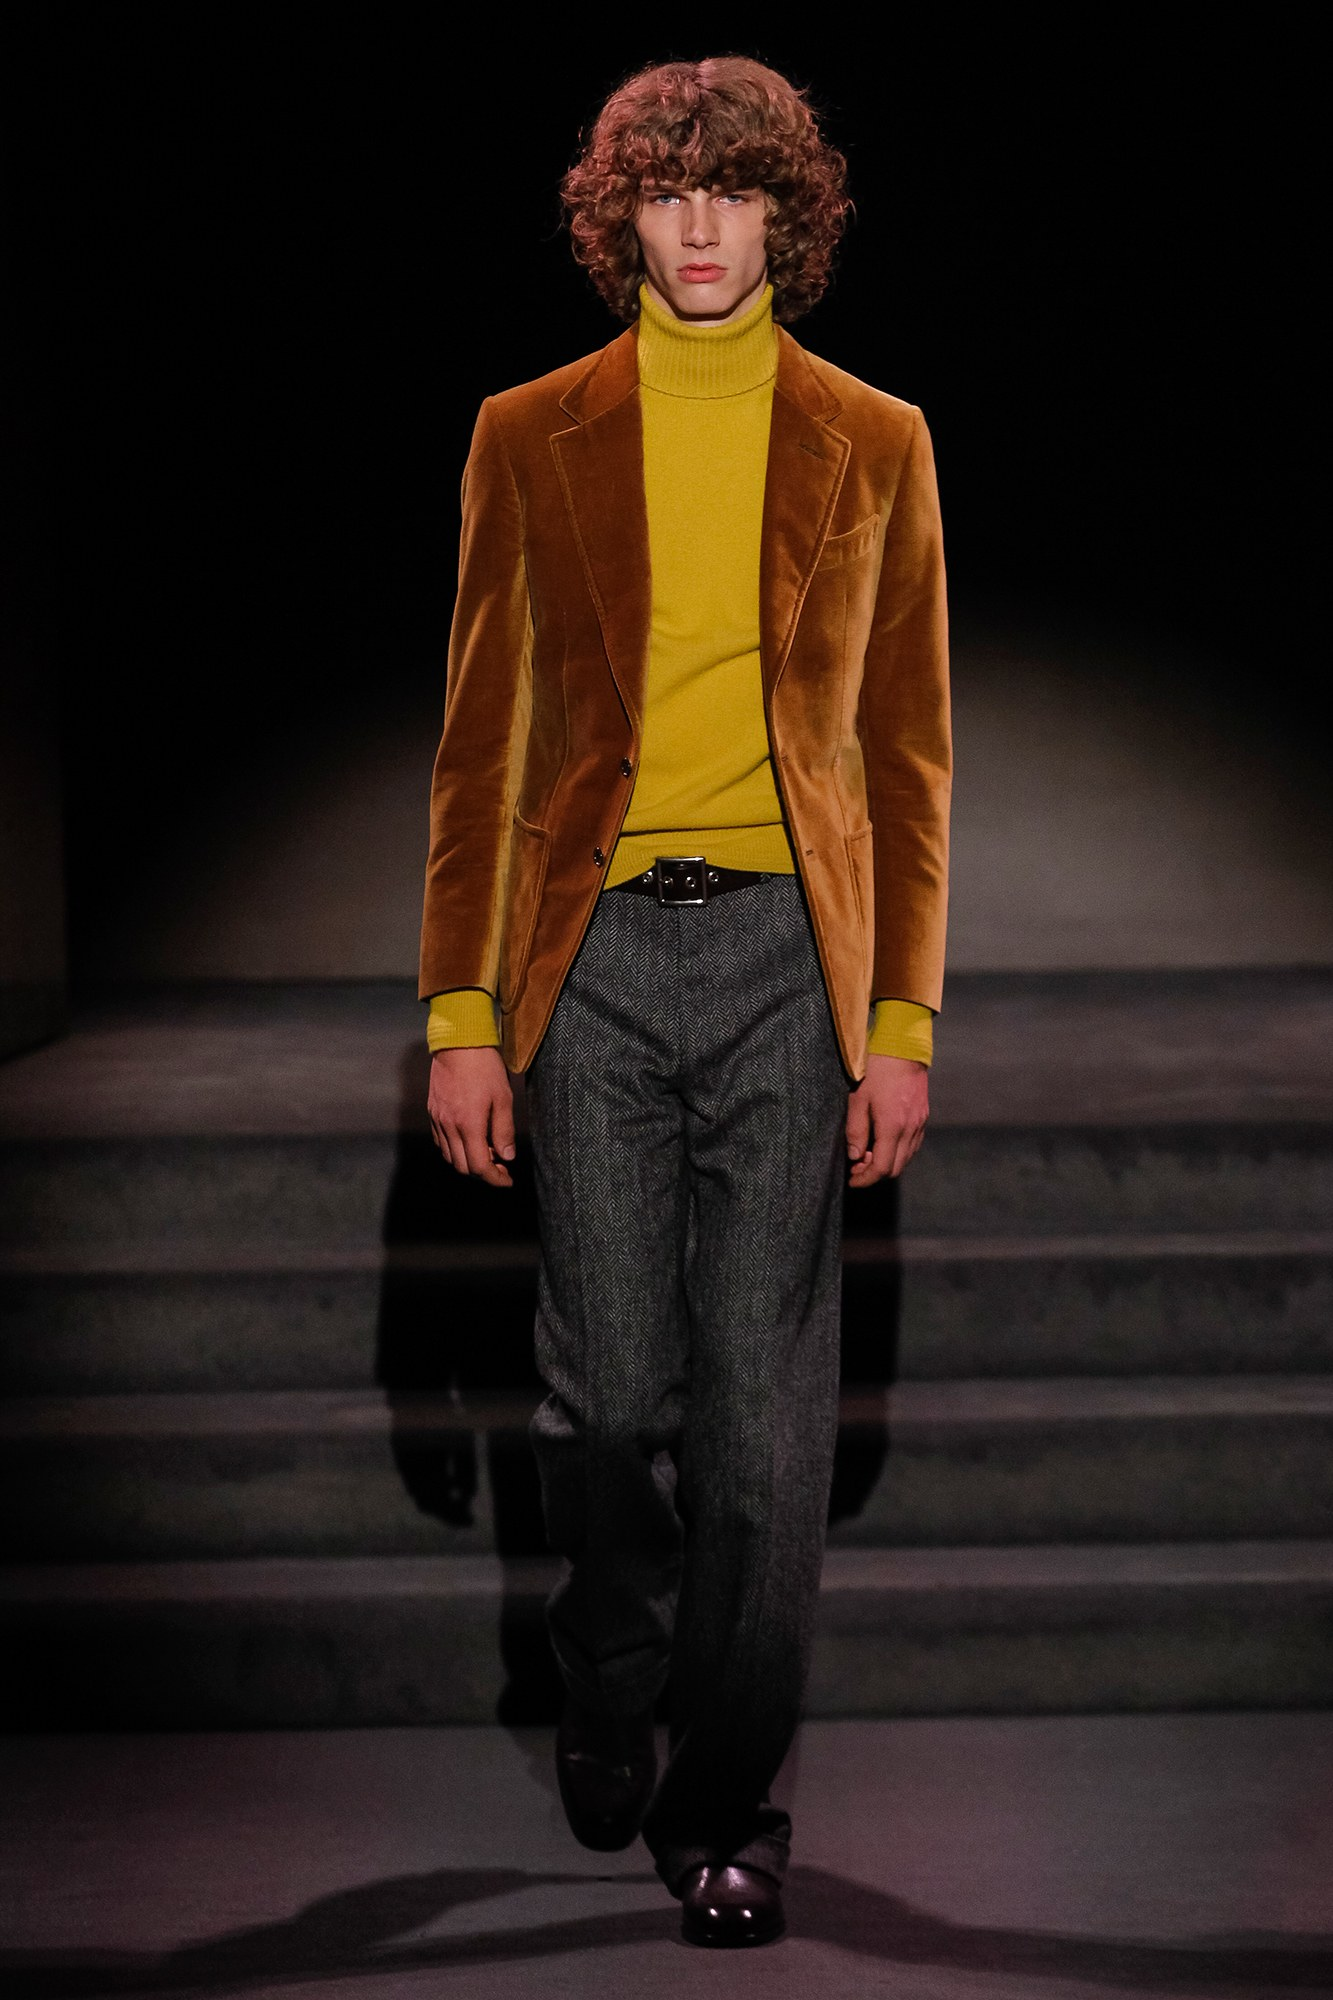 04-tom-ford-fall-2016-ready-to-wear